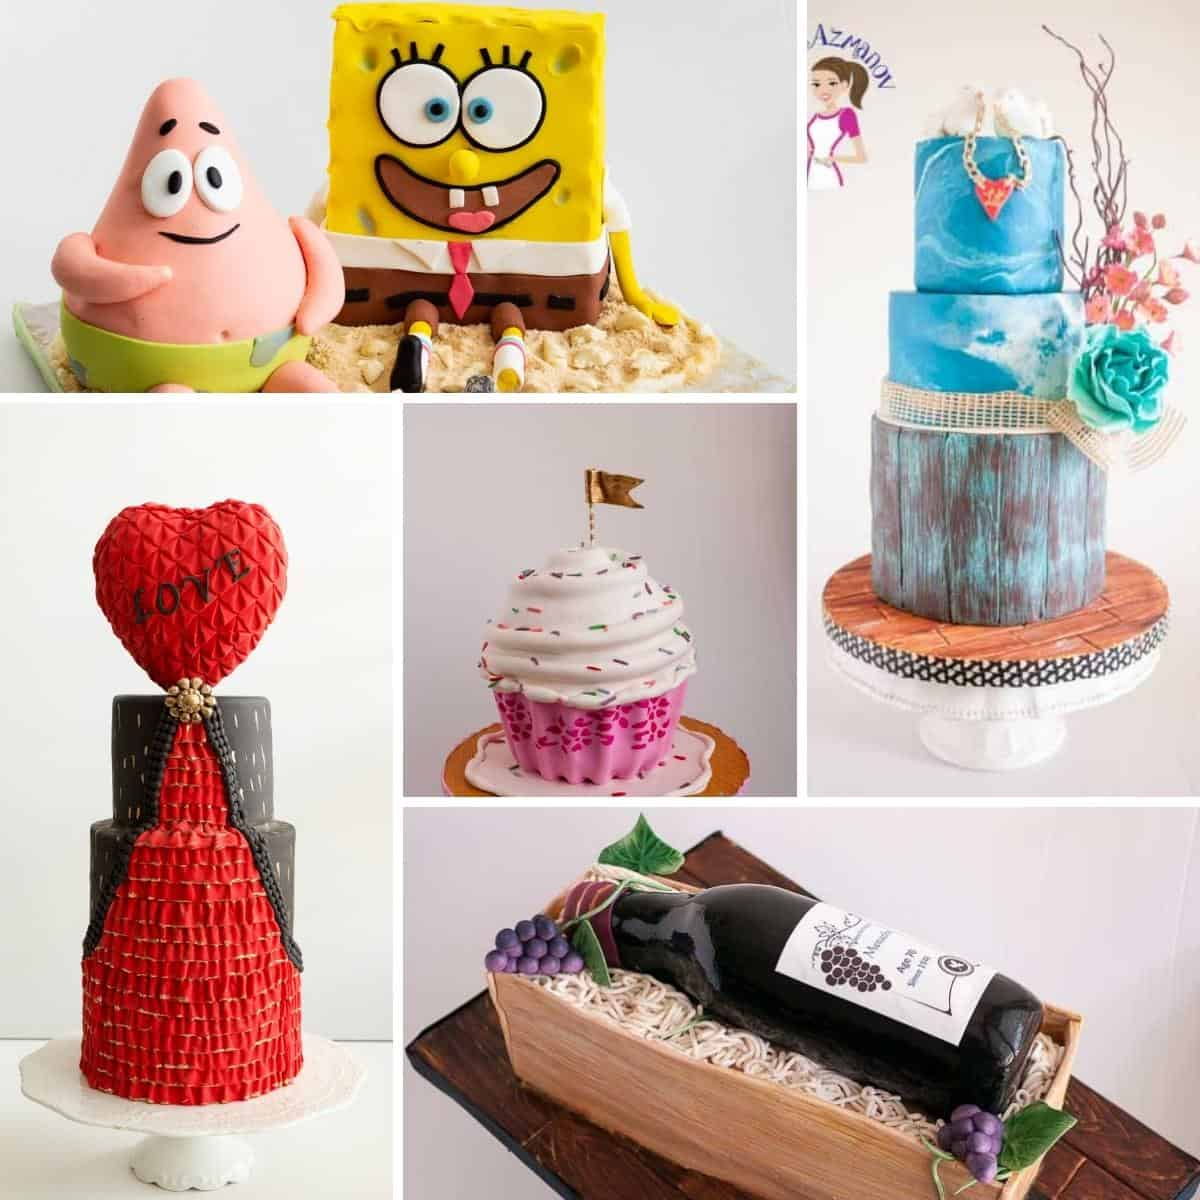 A collage of decorated cakes